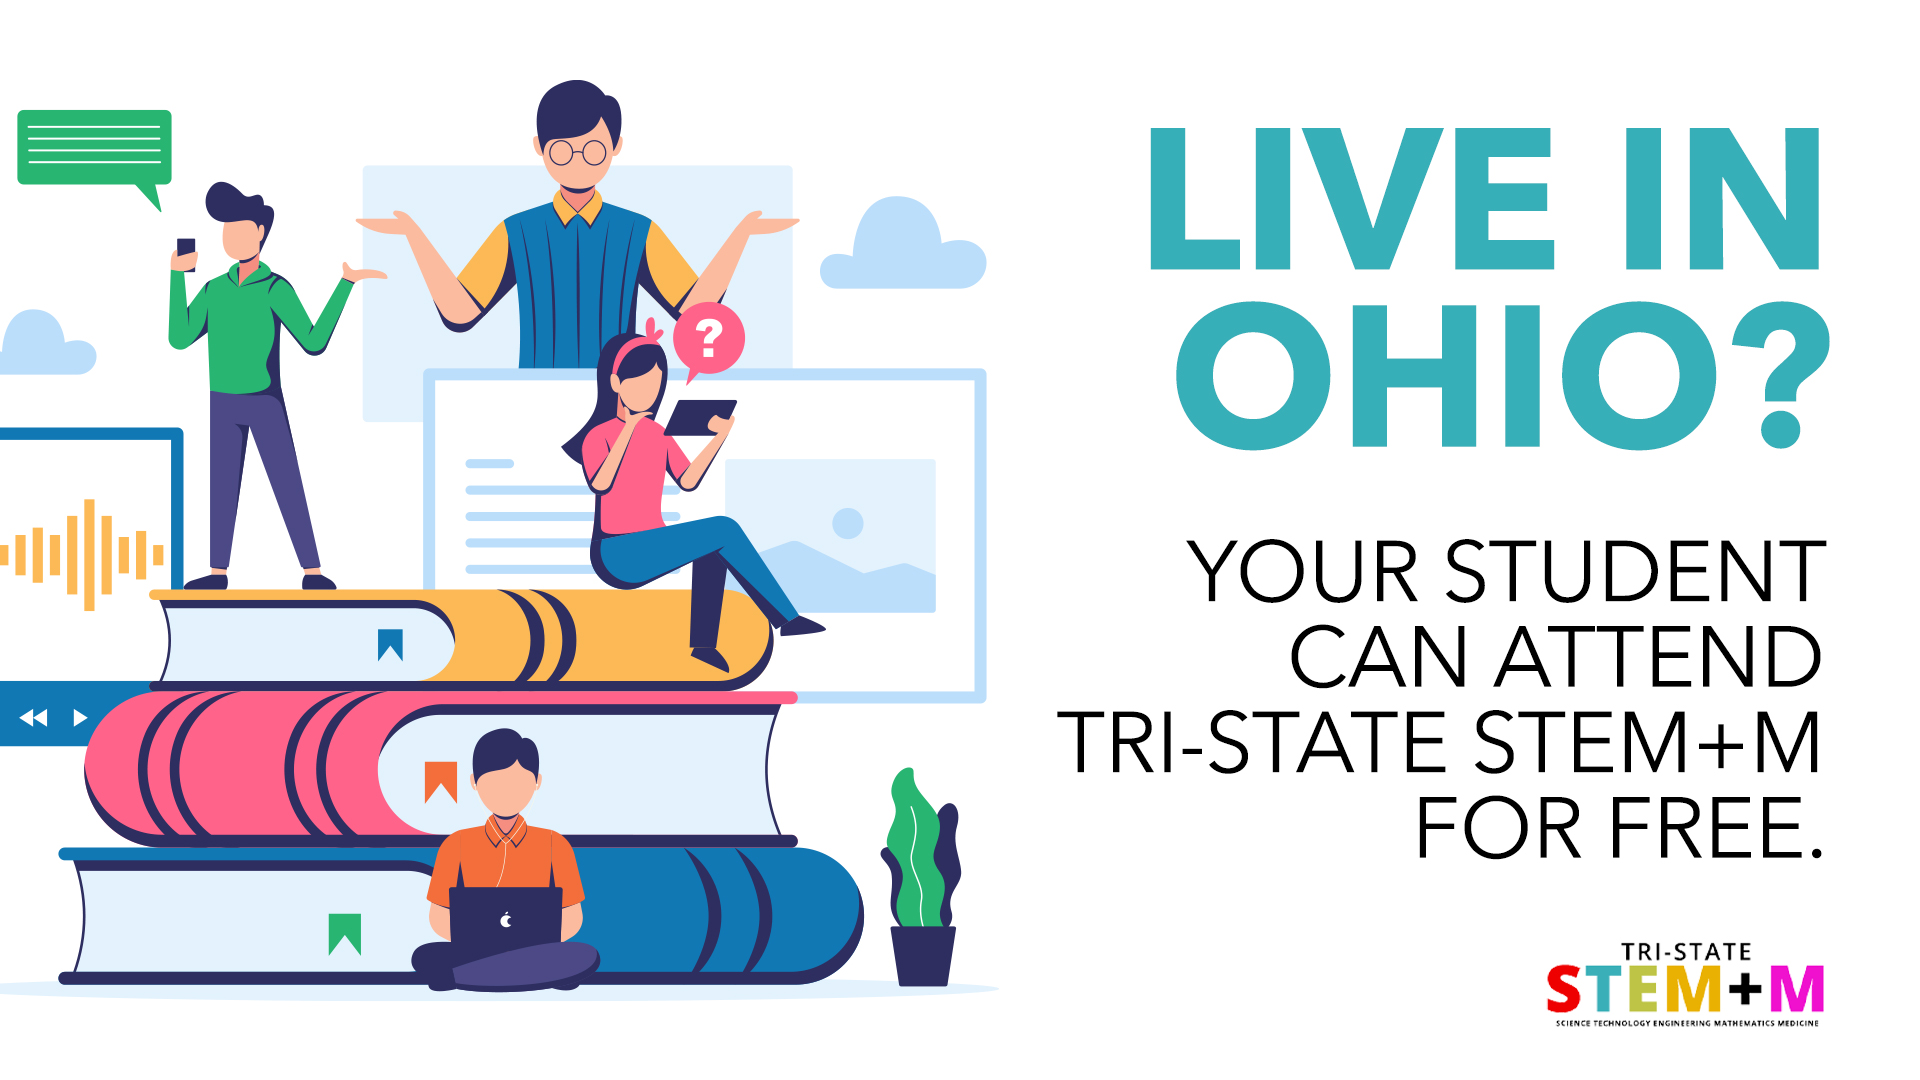 Live in Ohio. You can attend Tri-State STEM for free!